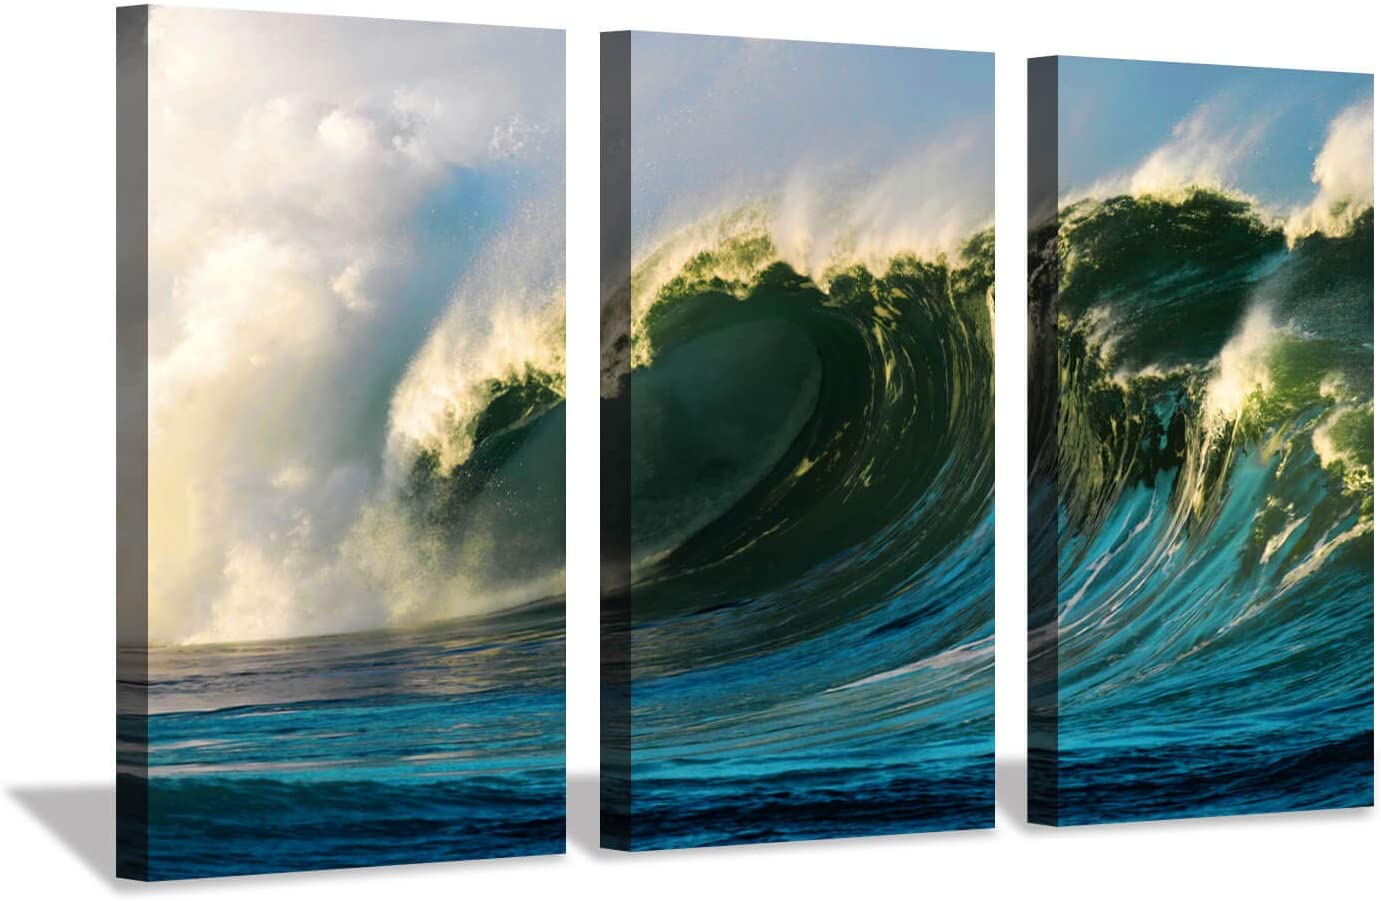 Ocean Wave Canvas Wall Art: Blue Seascape Artwork Picture Painting Print on Canvas for Living Room (34'' x 20'' x 3 Panels)